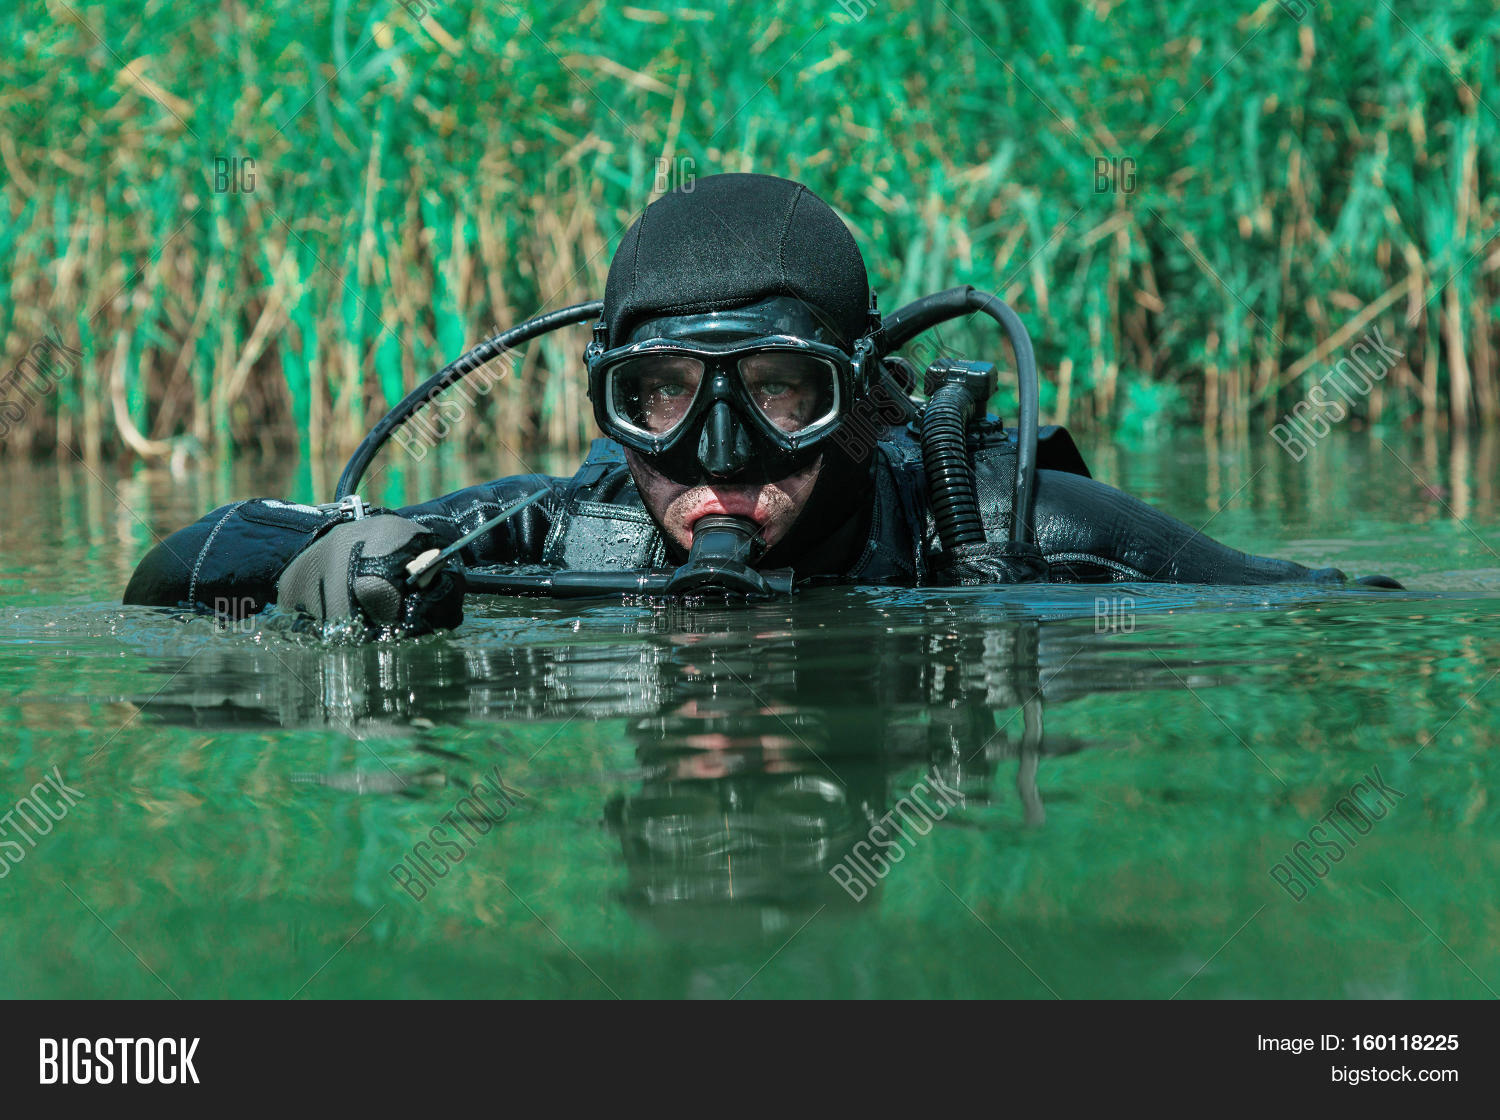 Navy SEAL Frogman Image & Photo (Free Trial) | Bigstock  |Navy Seals Emerging From Water